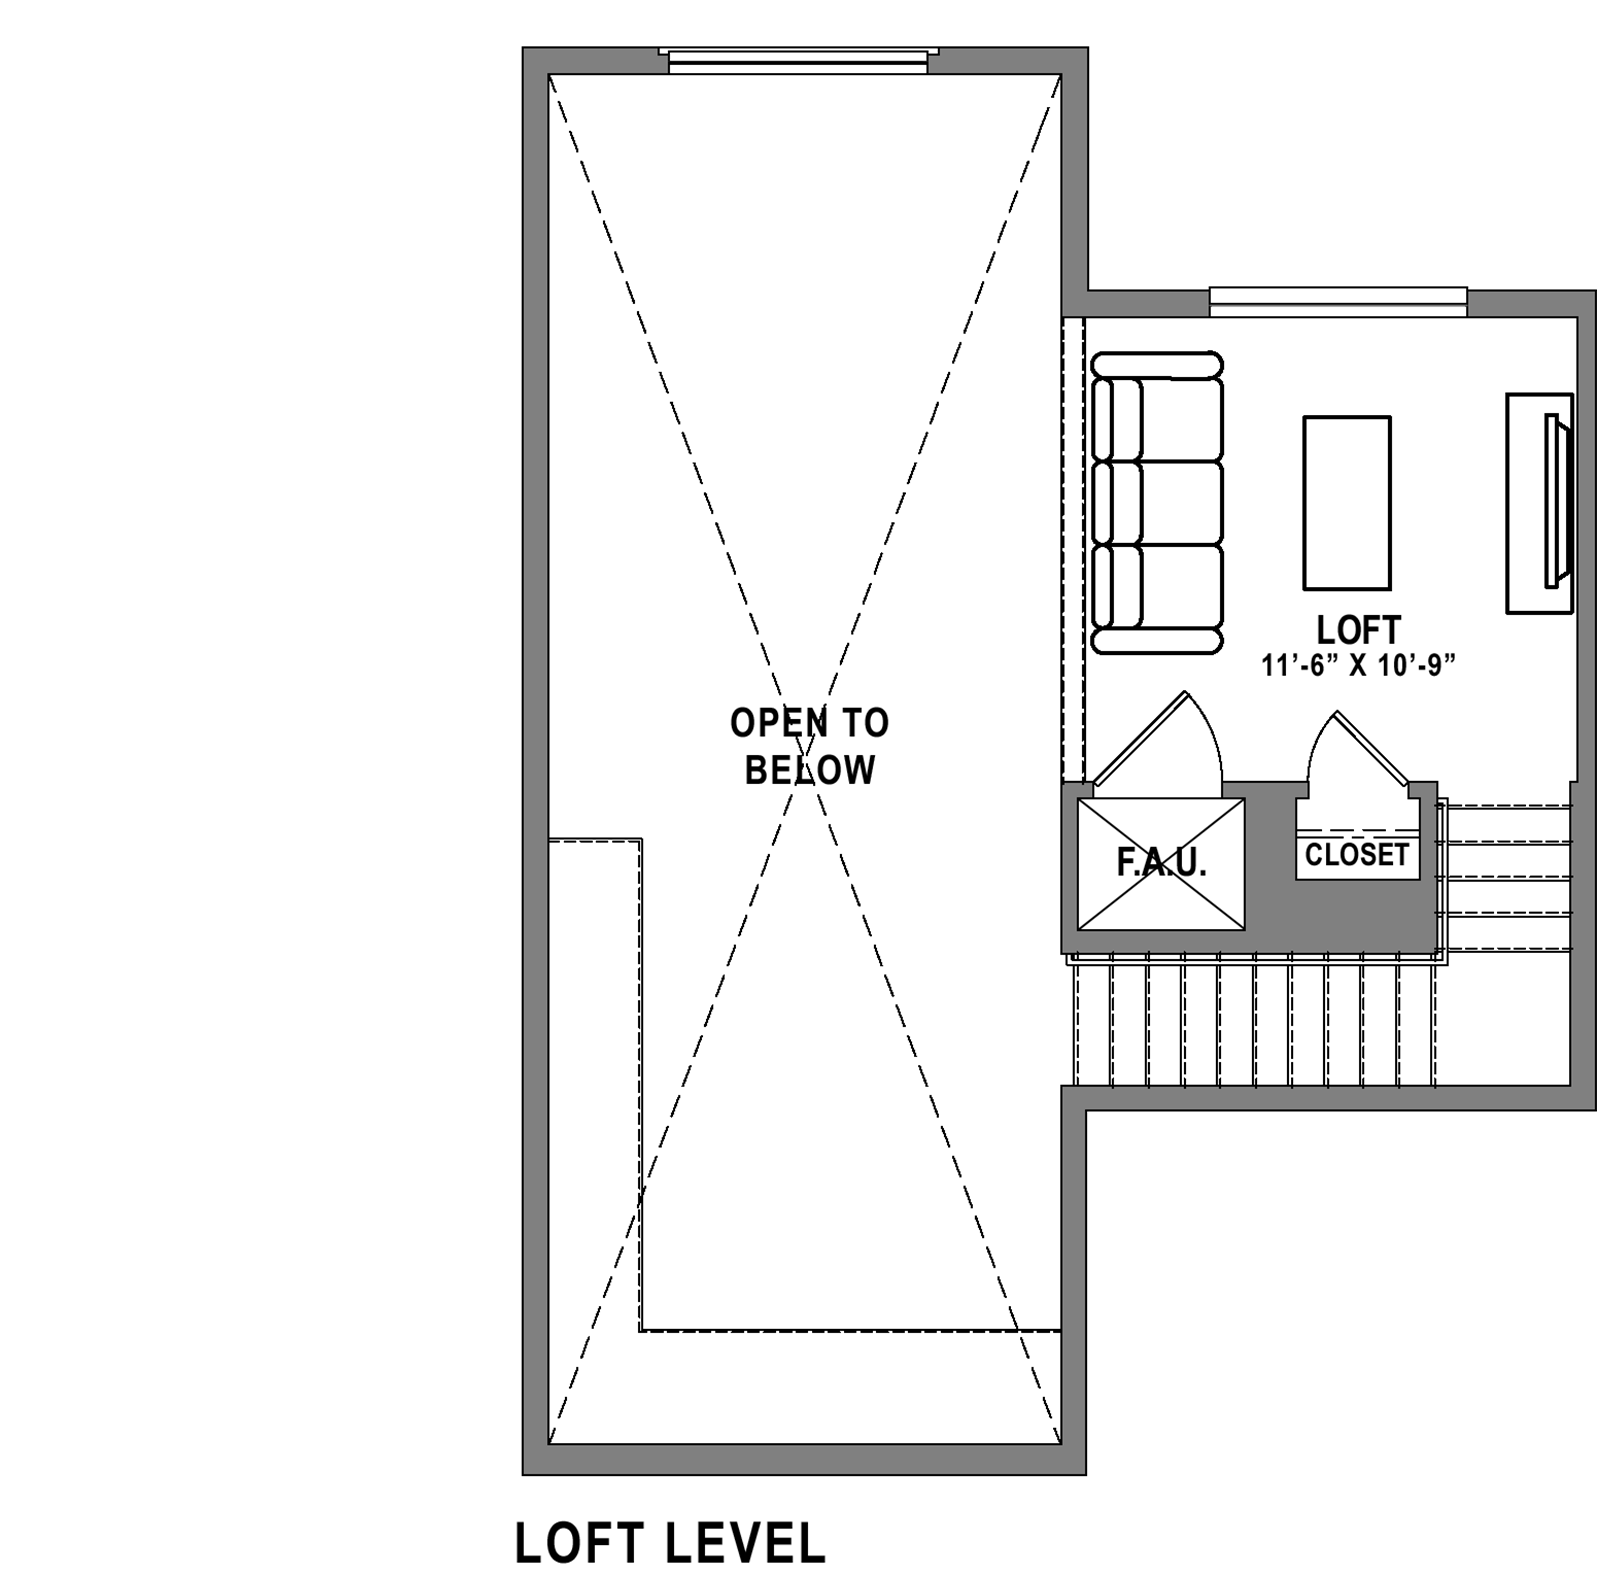 Plan B5 Loft - 2 Bedroom+ Loft, 2 Bath Floor Plan